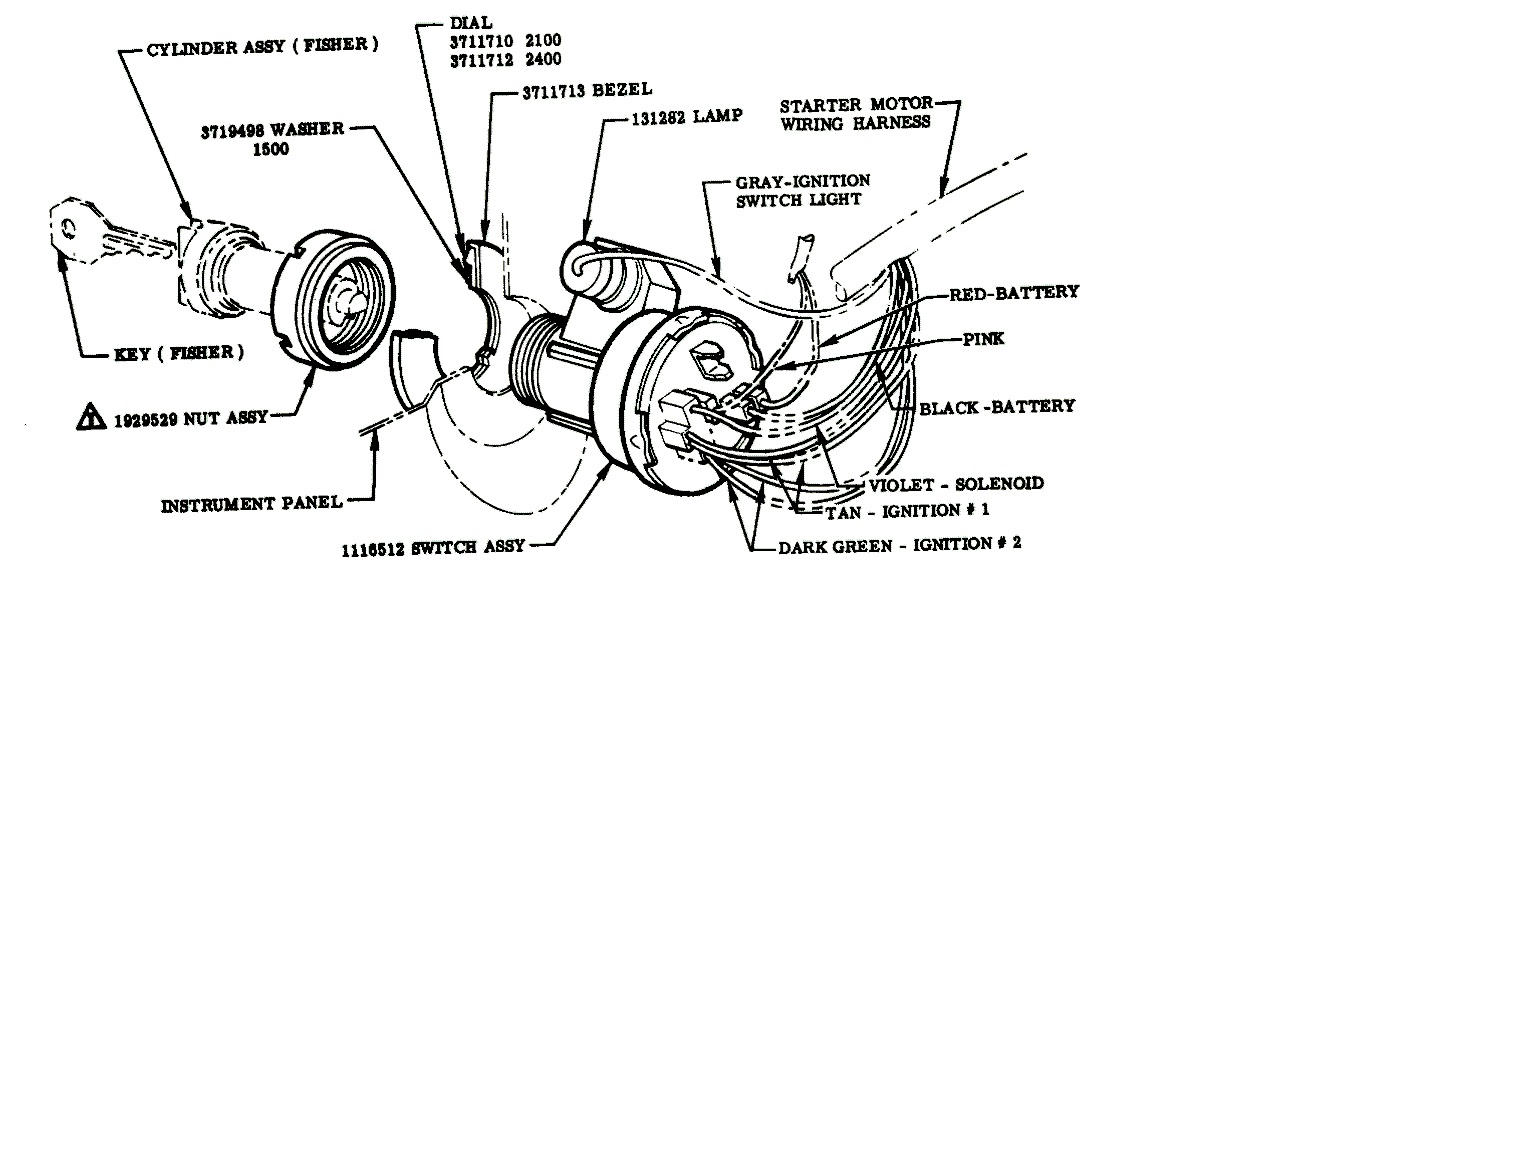 Mitsubishi 3000 Wiring Diagram Manual Of Technical Ignition Switch 1955 2 Chevy 3000gt Fuel Pump